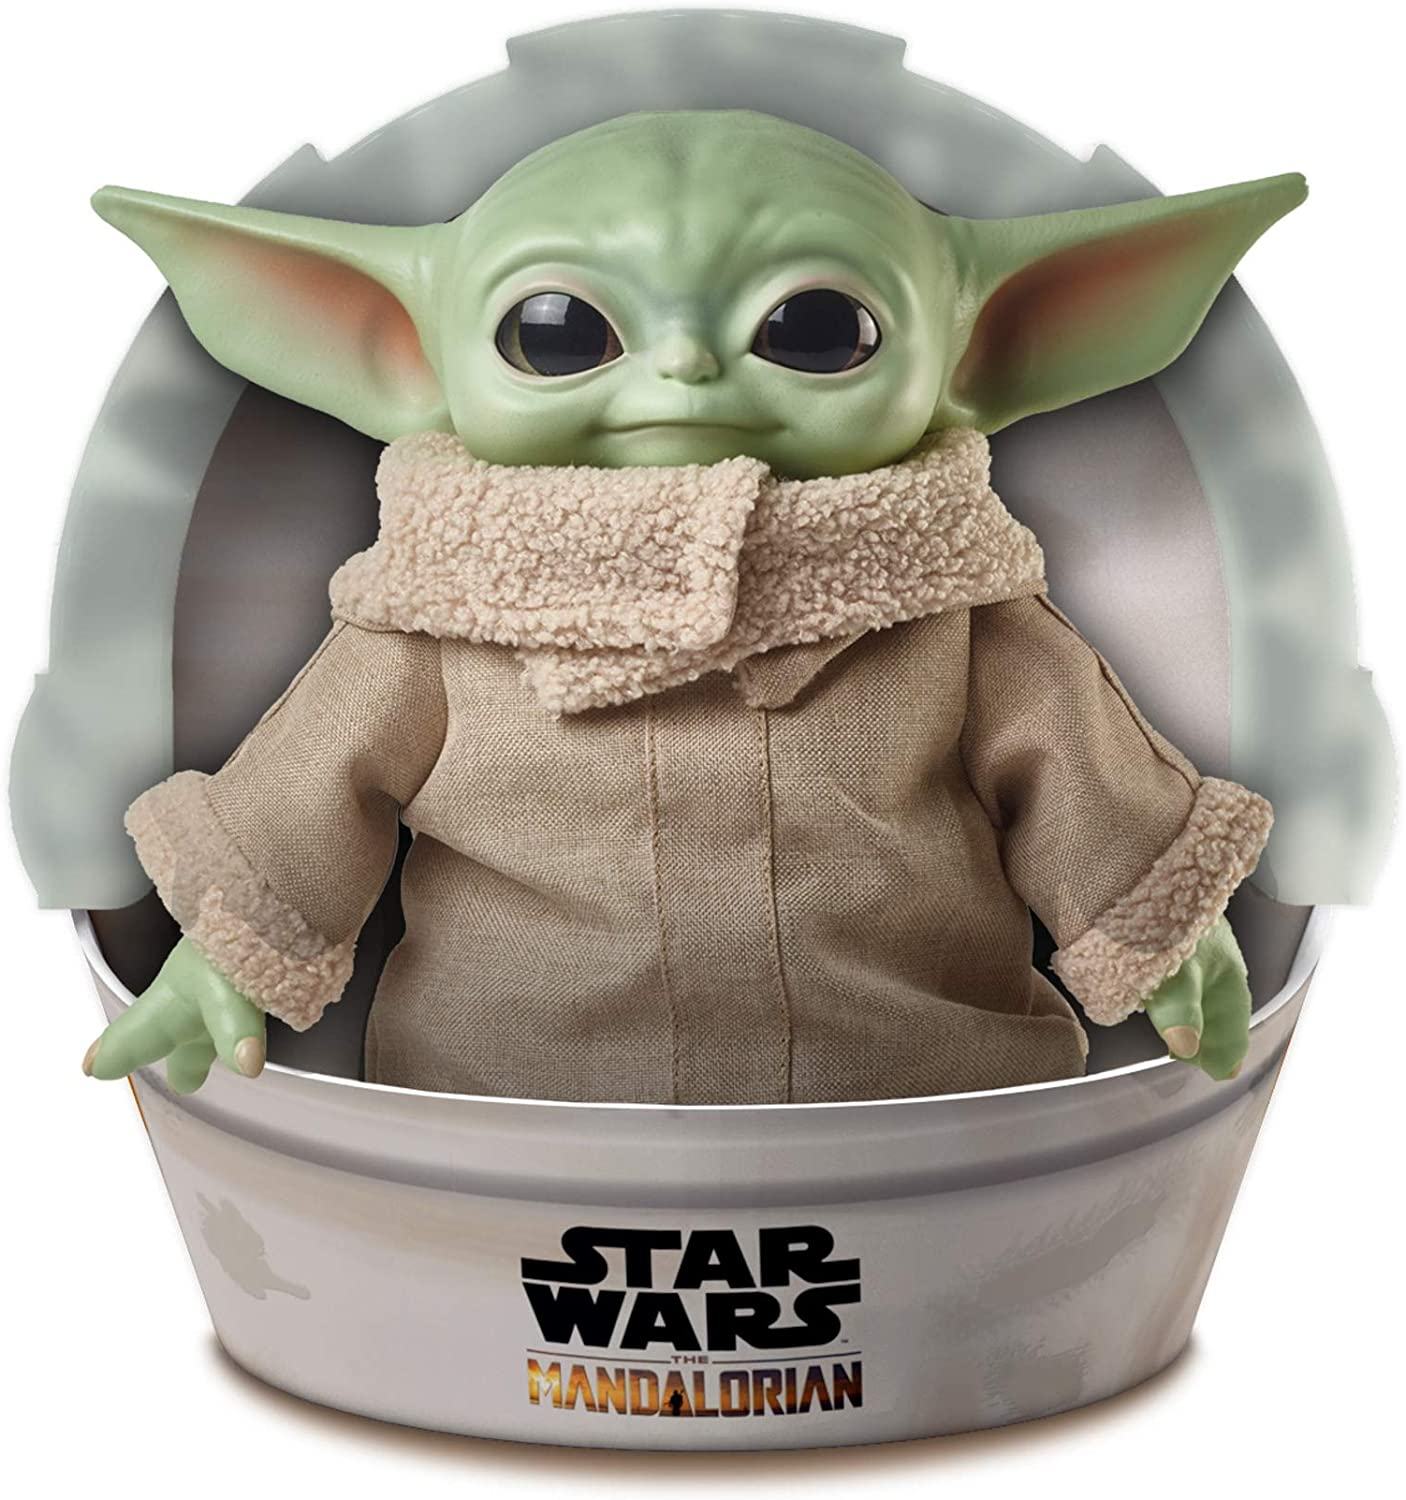 Roulette Star Wars The Child Plush Toy 11 Inch Small Yoda Like Soft Figure From The Mandalorian GWD85